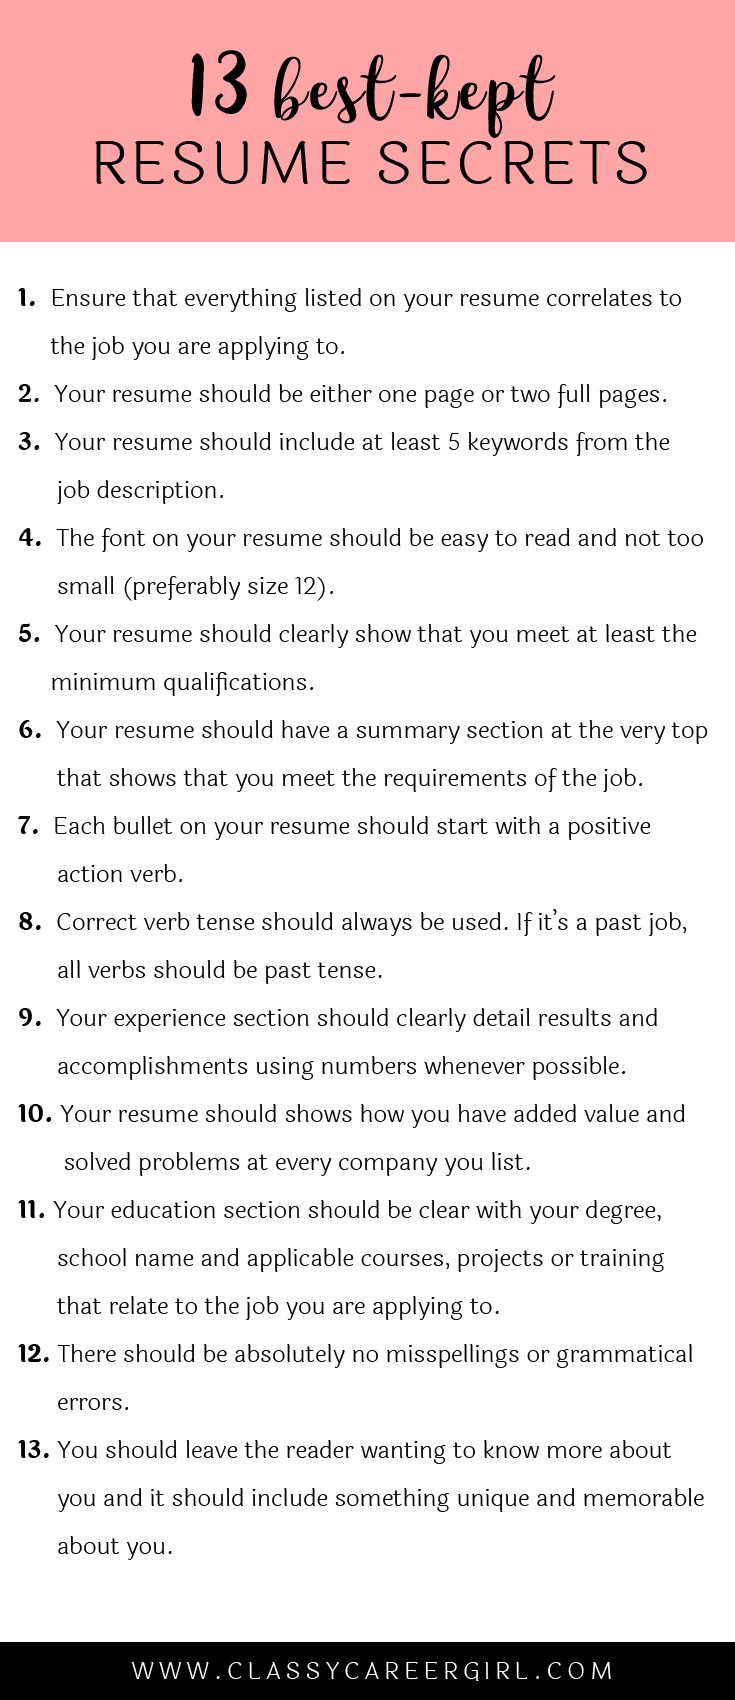 Opposenewapstandardsus  Mesmerizing  Ideas About Resume On Pinterest  Cv Format Resume Cv And  With Fair Some Hiring Managers Will Toss Your Resume Out If You Dont Know These  With Charming Banking Resume Examples Also Functional Resume Builder In Addition Resume Templates For Teachers And How To Construct A Resume As Well As Administrative Assistant Skills Resume Additionally Retail Skills Resume From Pinterestcom With Opposenewapstandardsus  Fair  Ideas About Resume On Pinterest  Cv Format Resume Cv And  With Charming Some Hiring Managers Will Toss Your Resume Out If You Dont Know These  And Mesmerizing Banking Resume Examples Also Functional Resume Builder In Addition Resume Templates For Teachers From Pinterestcom